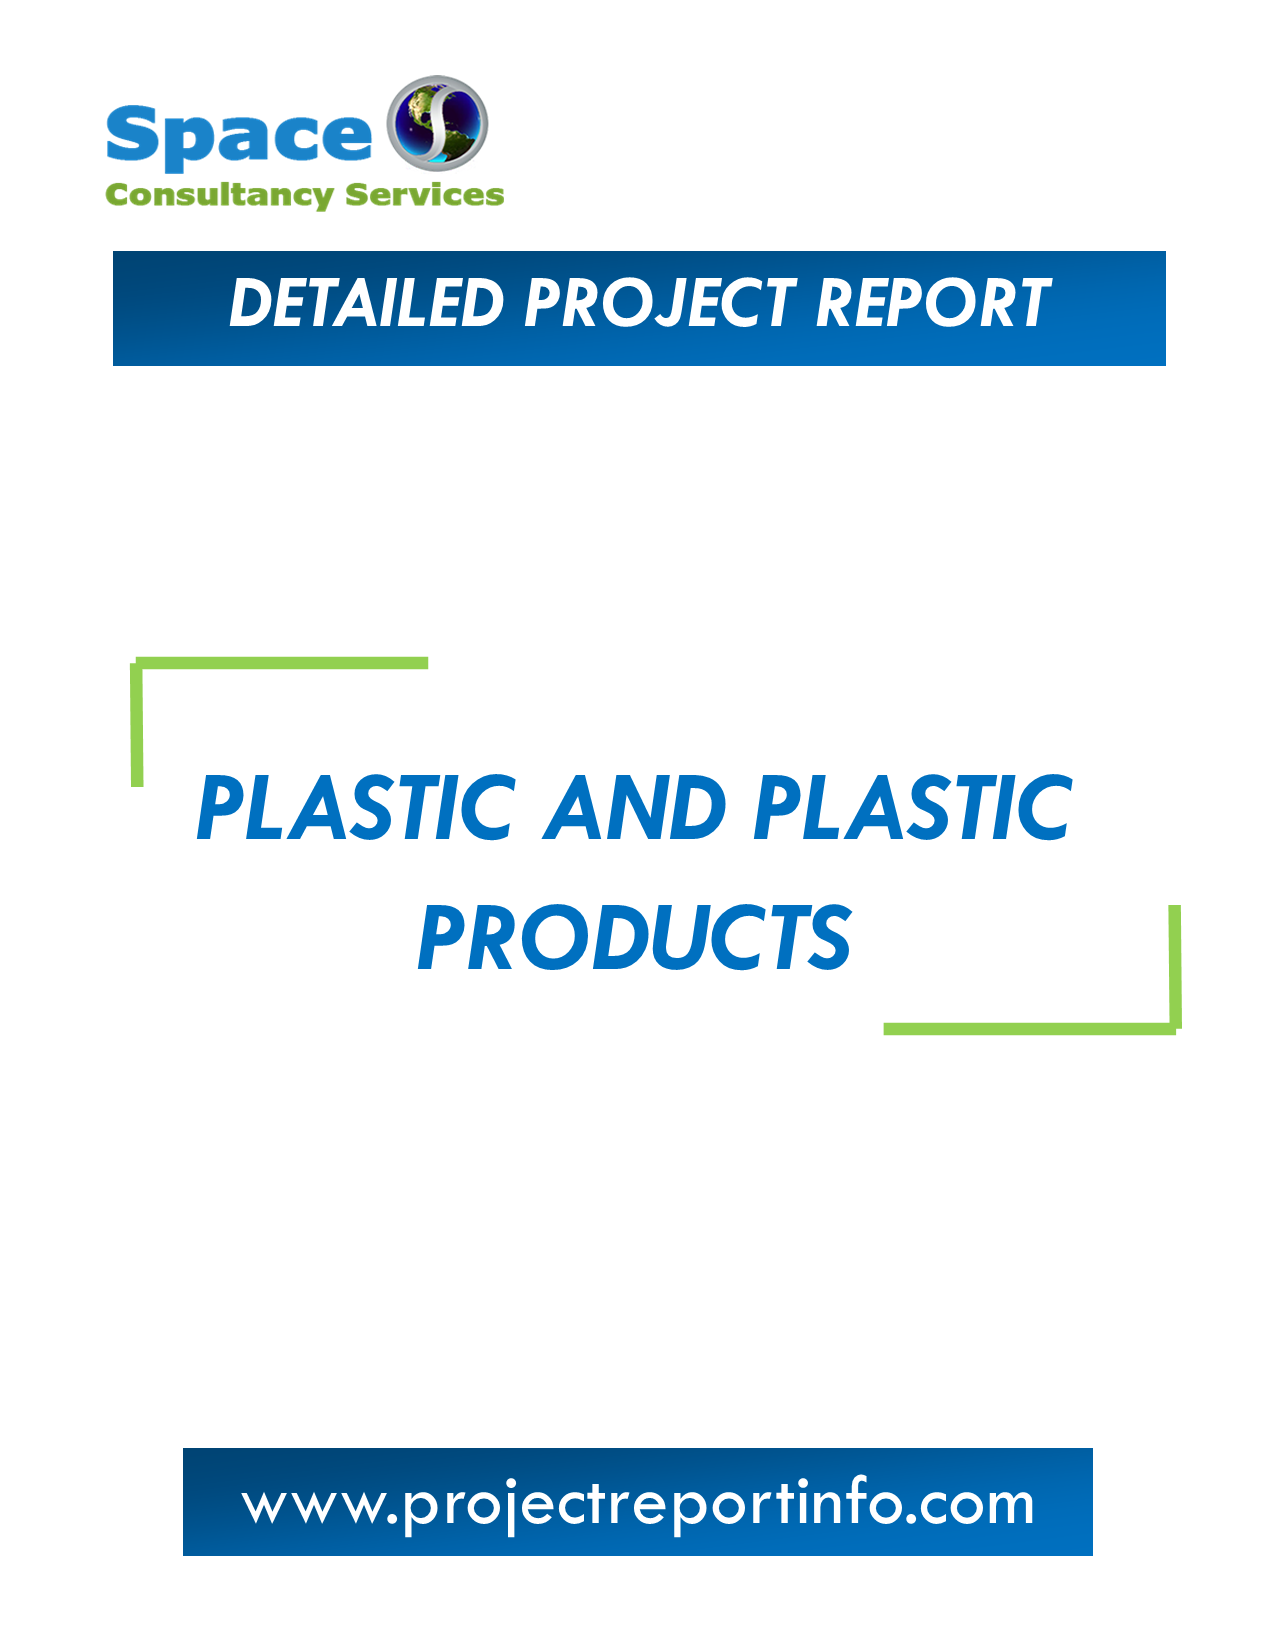 Plastic and Plastic Products